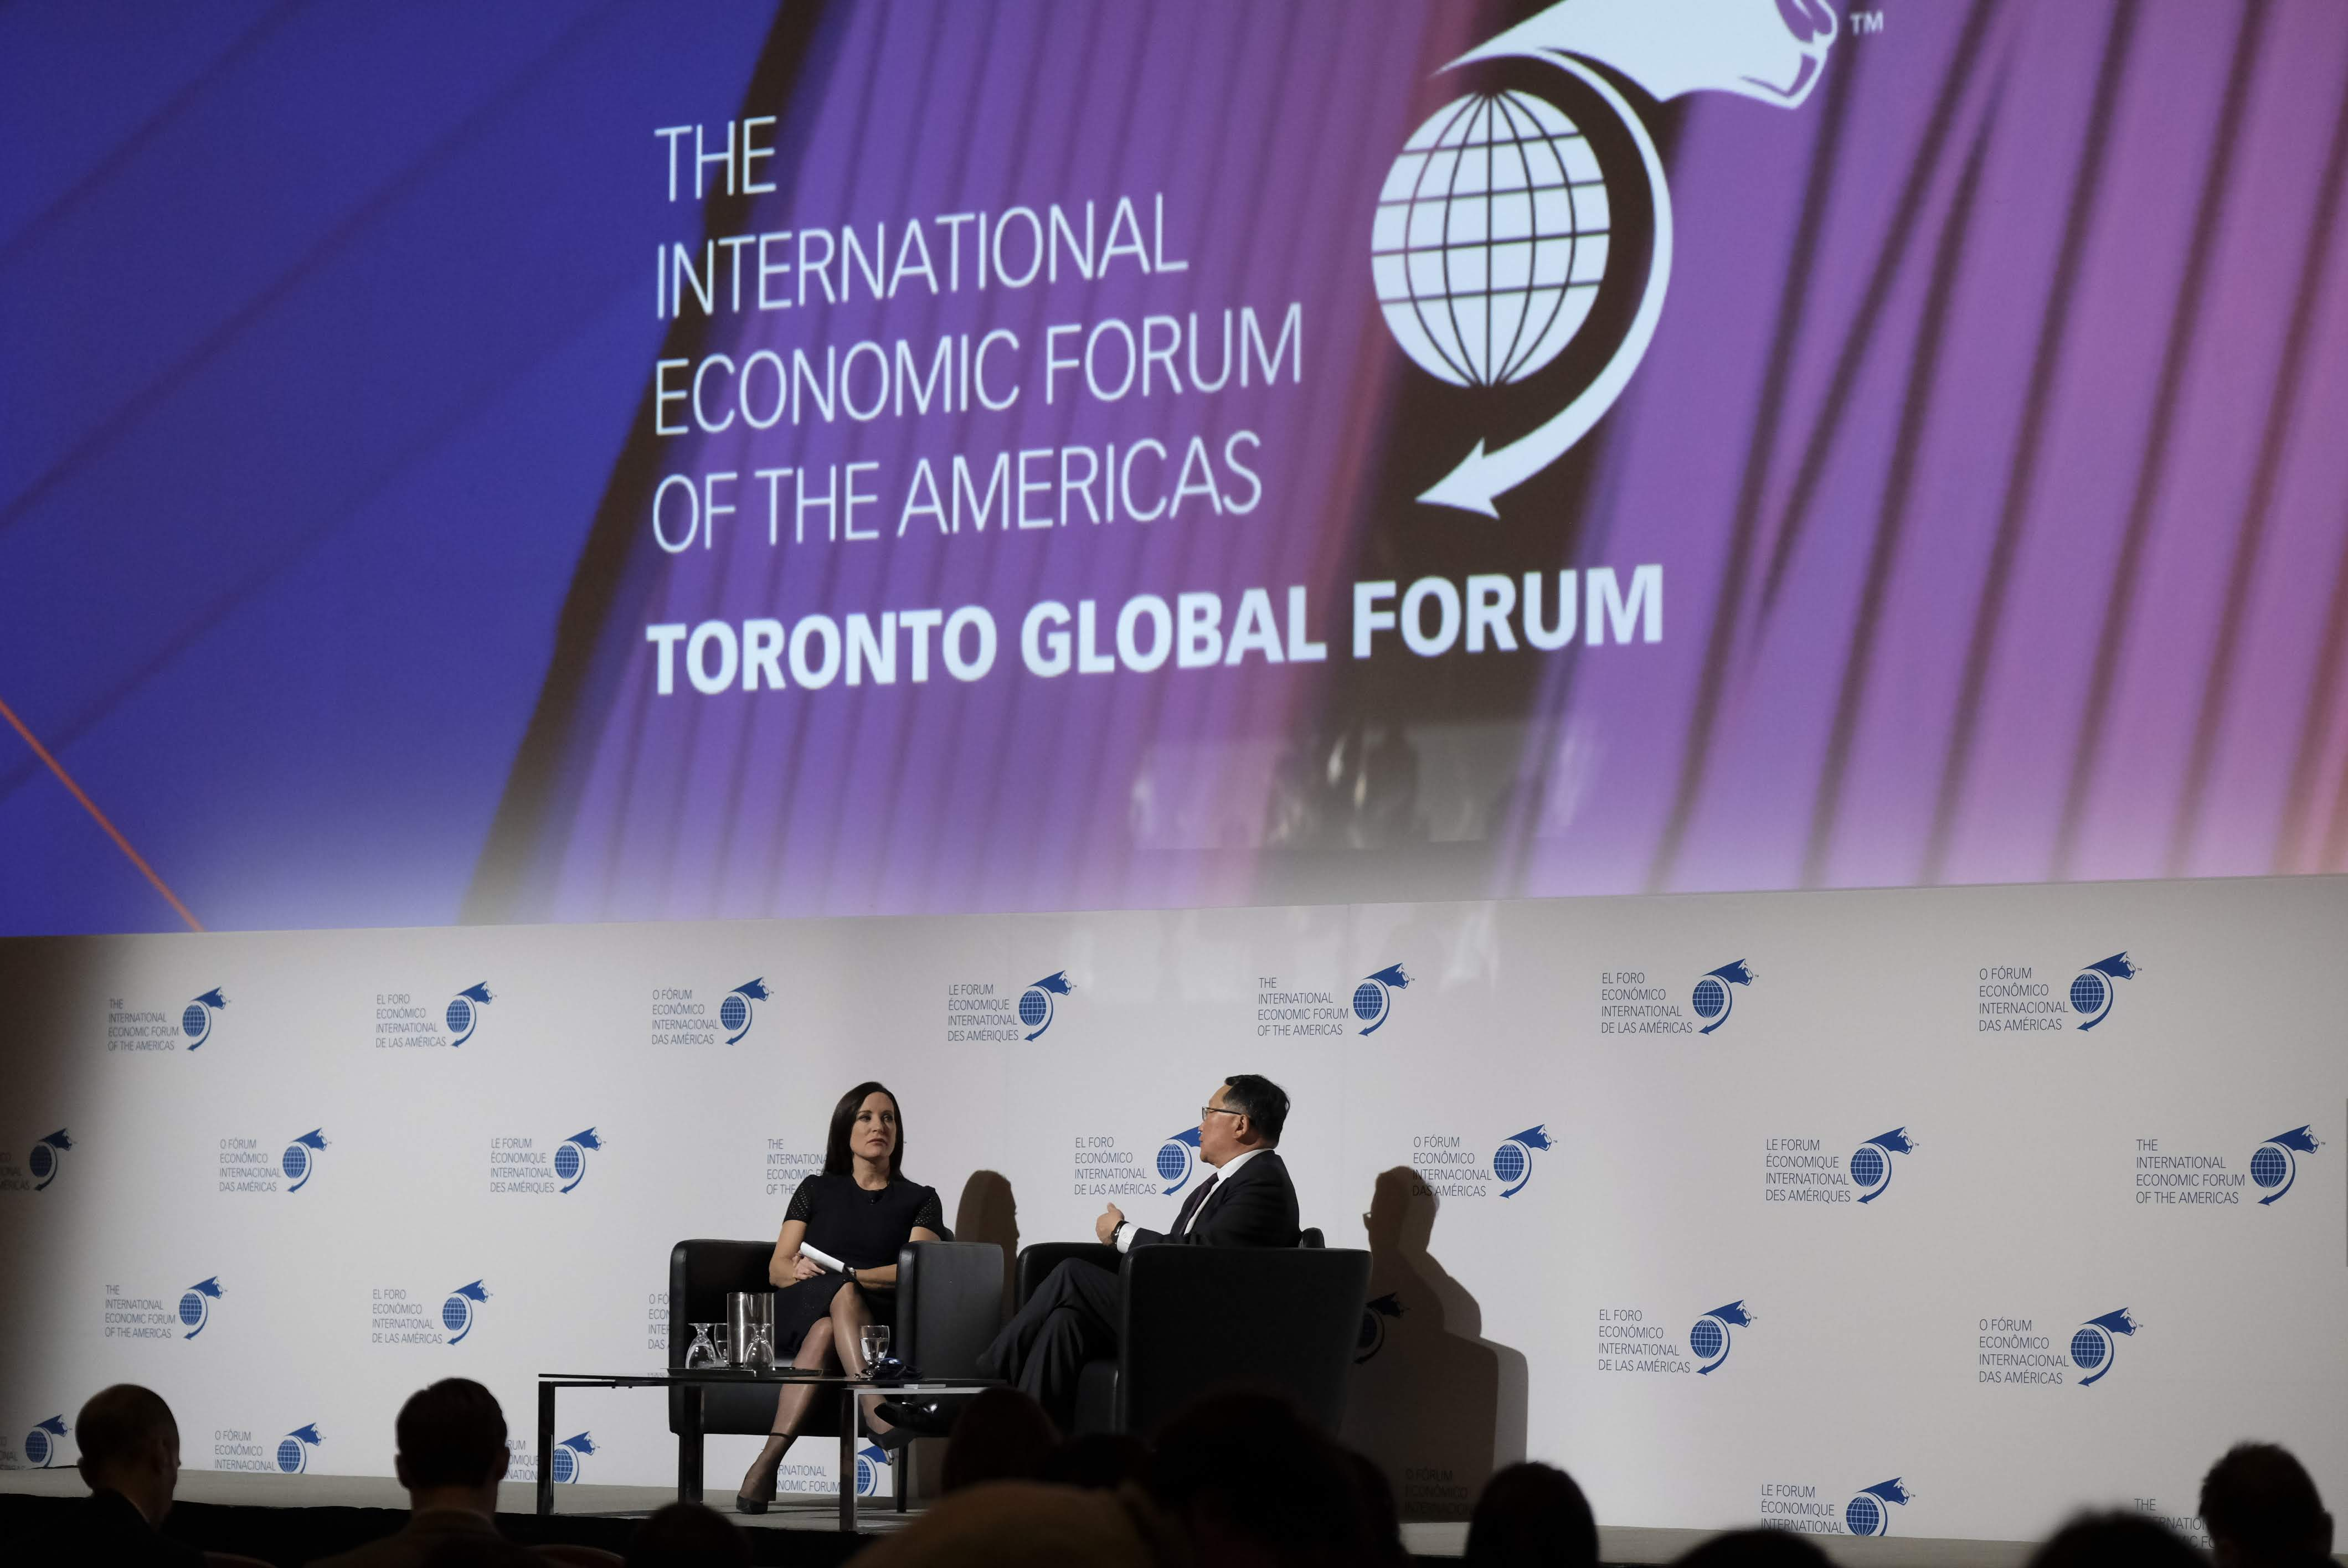 Fireside Chat - John Chen, Executive Chairman and Chief Executive Officer, BlackBerry interviewed by Amanda Lang, Anchor, BNN Bloomberg